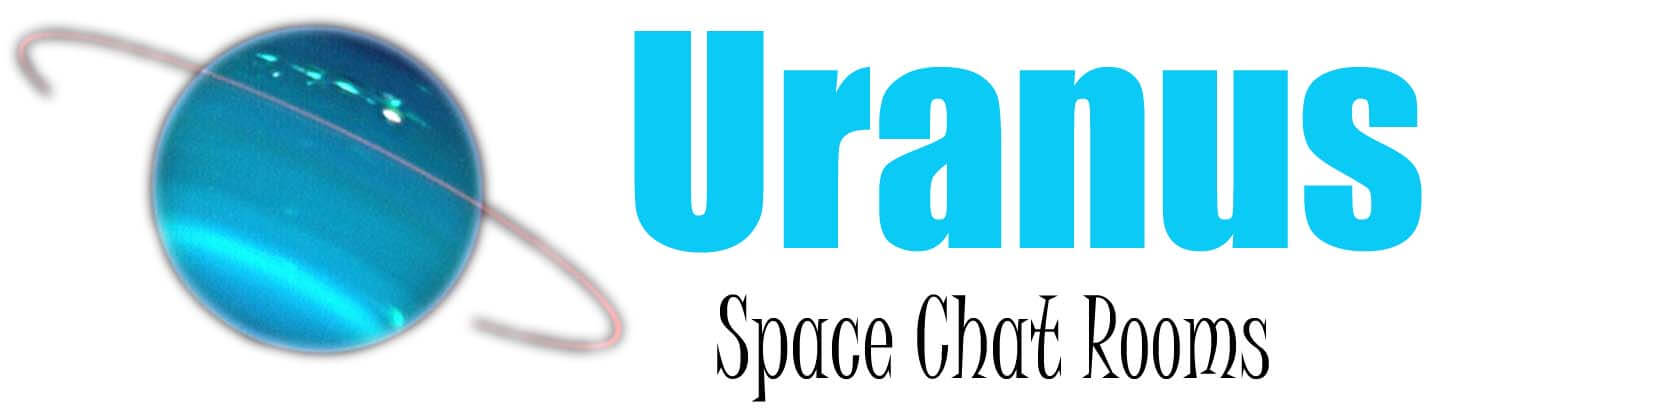 Uranus-Chat-Room